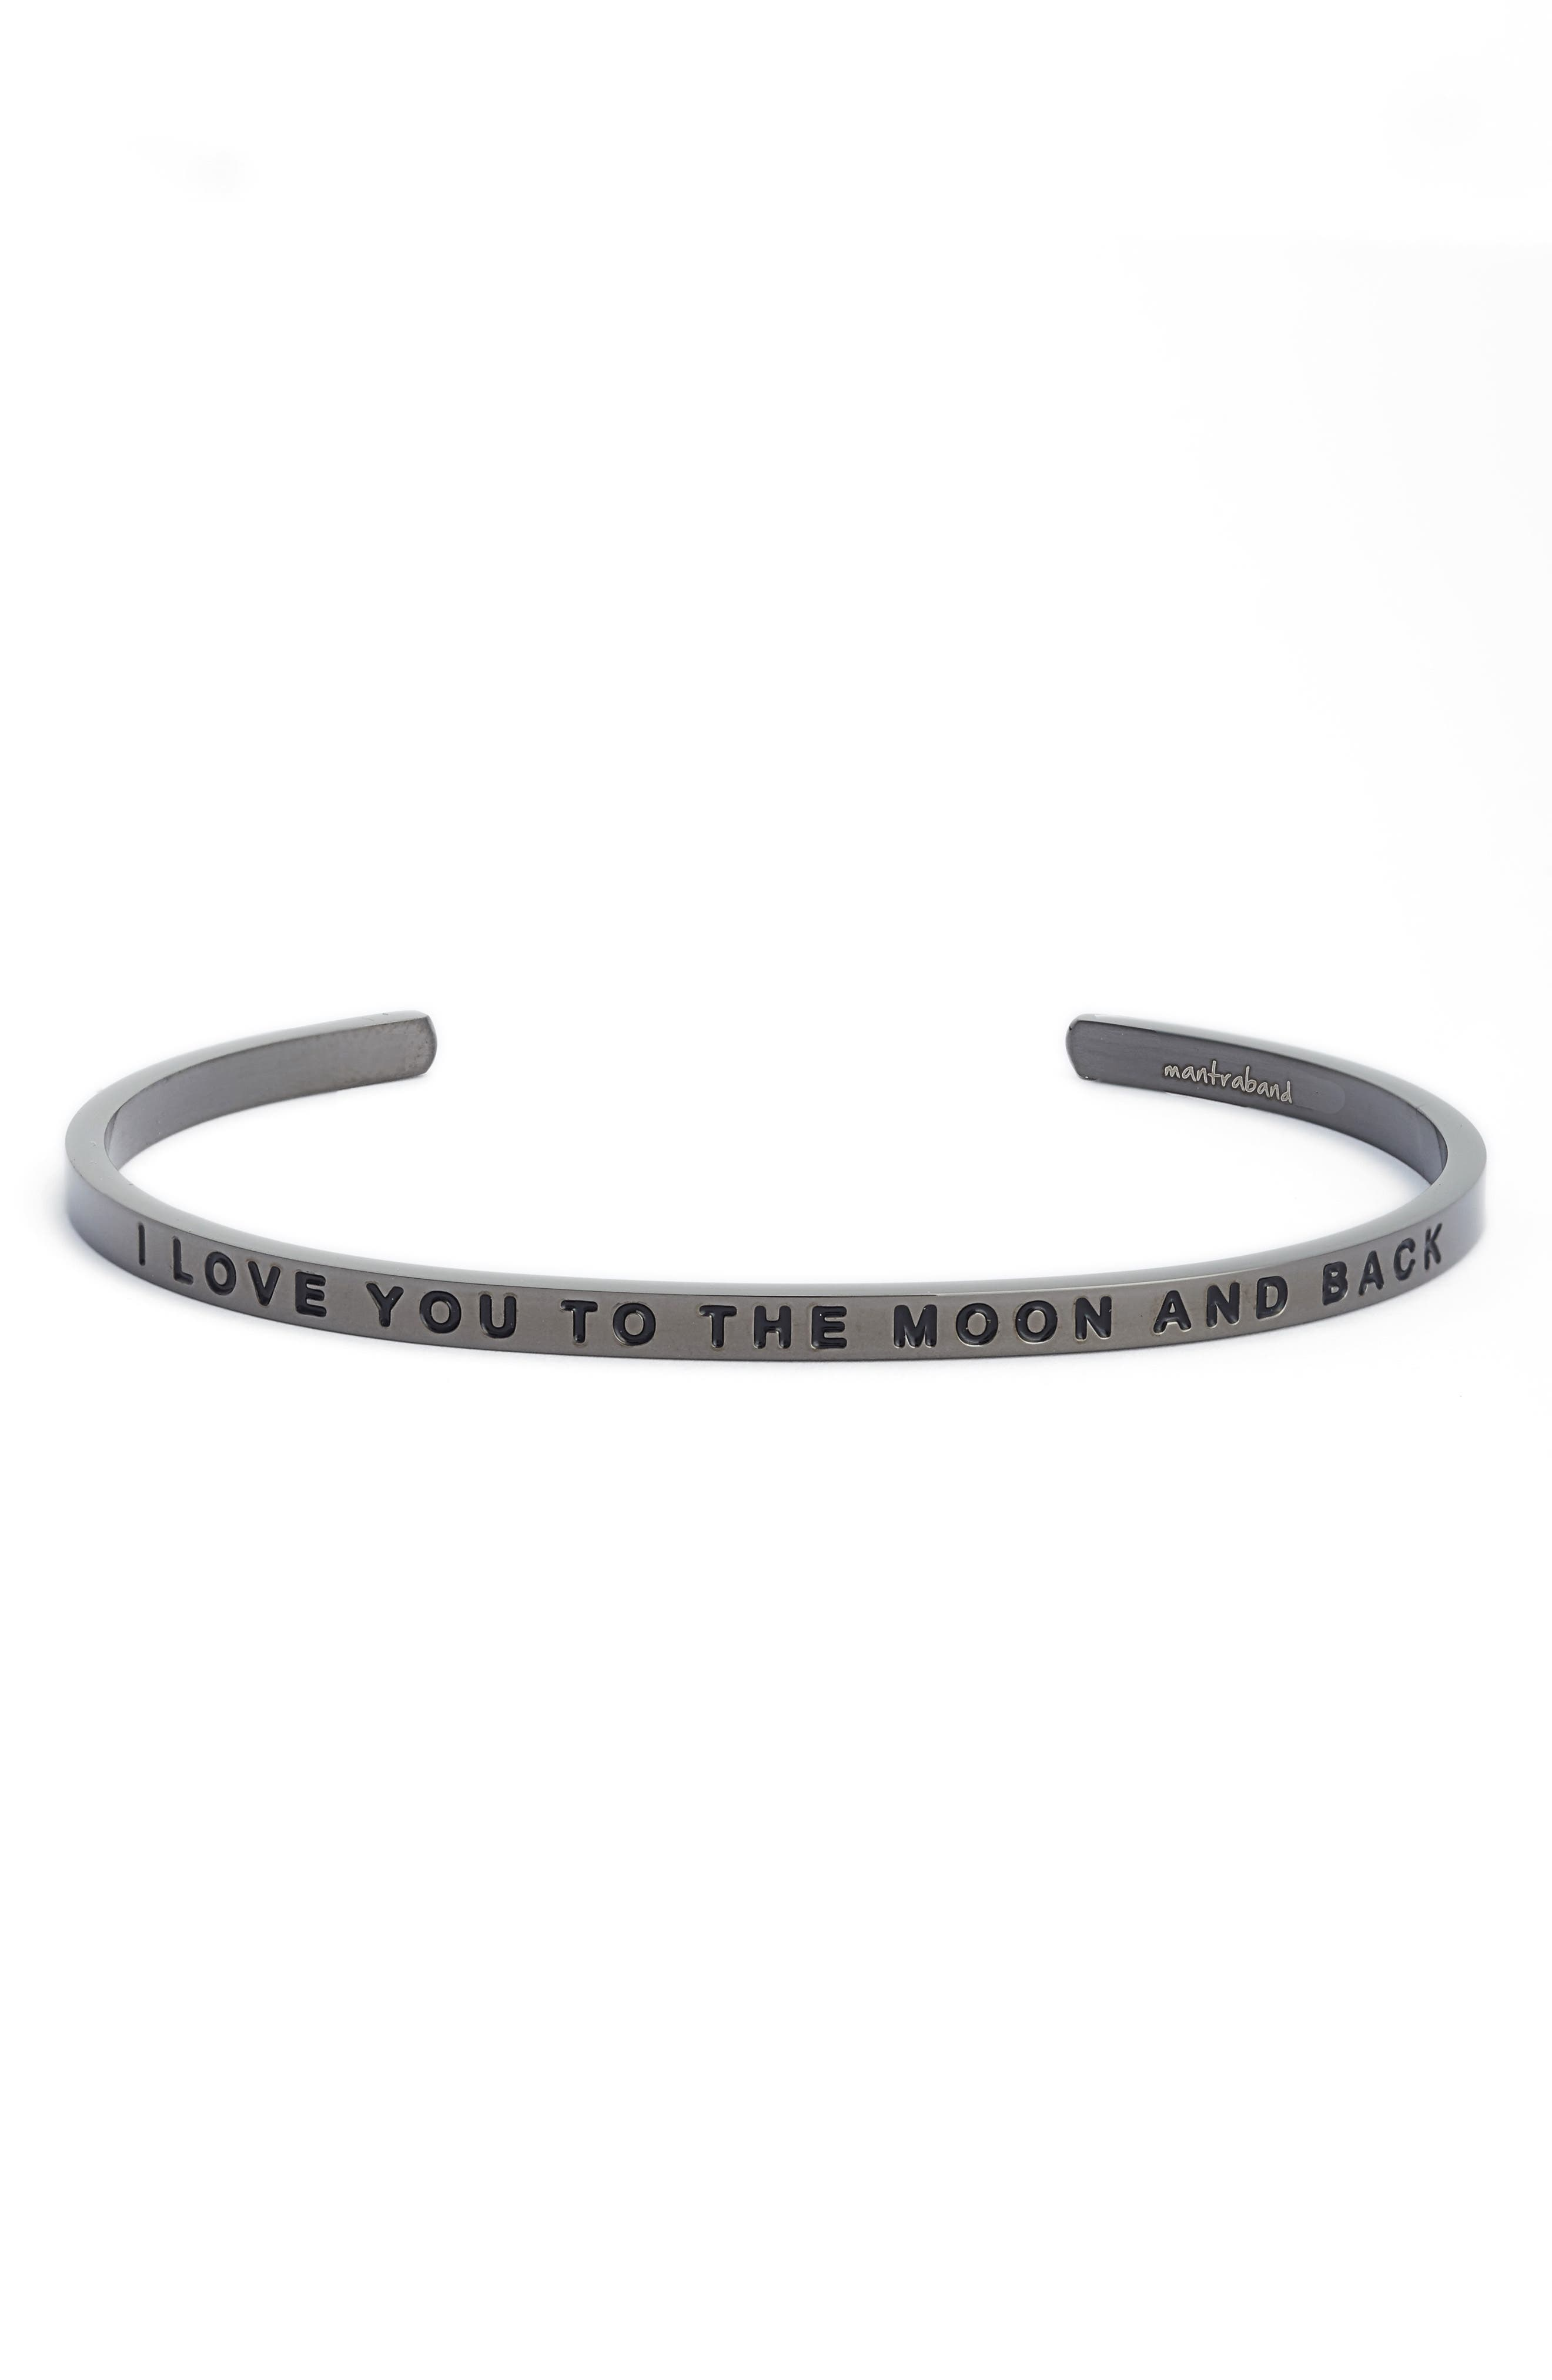 'I Love You to the Moon and Back' Cuff,                             Main thumbnail 1, color,                             Moon Gray